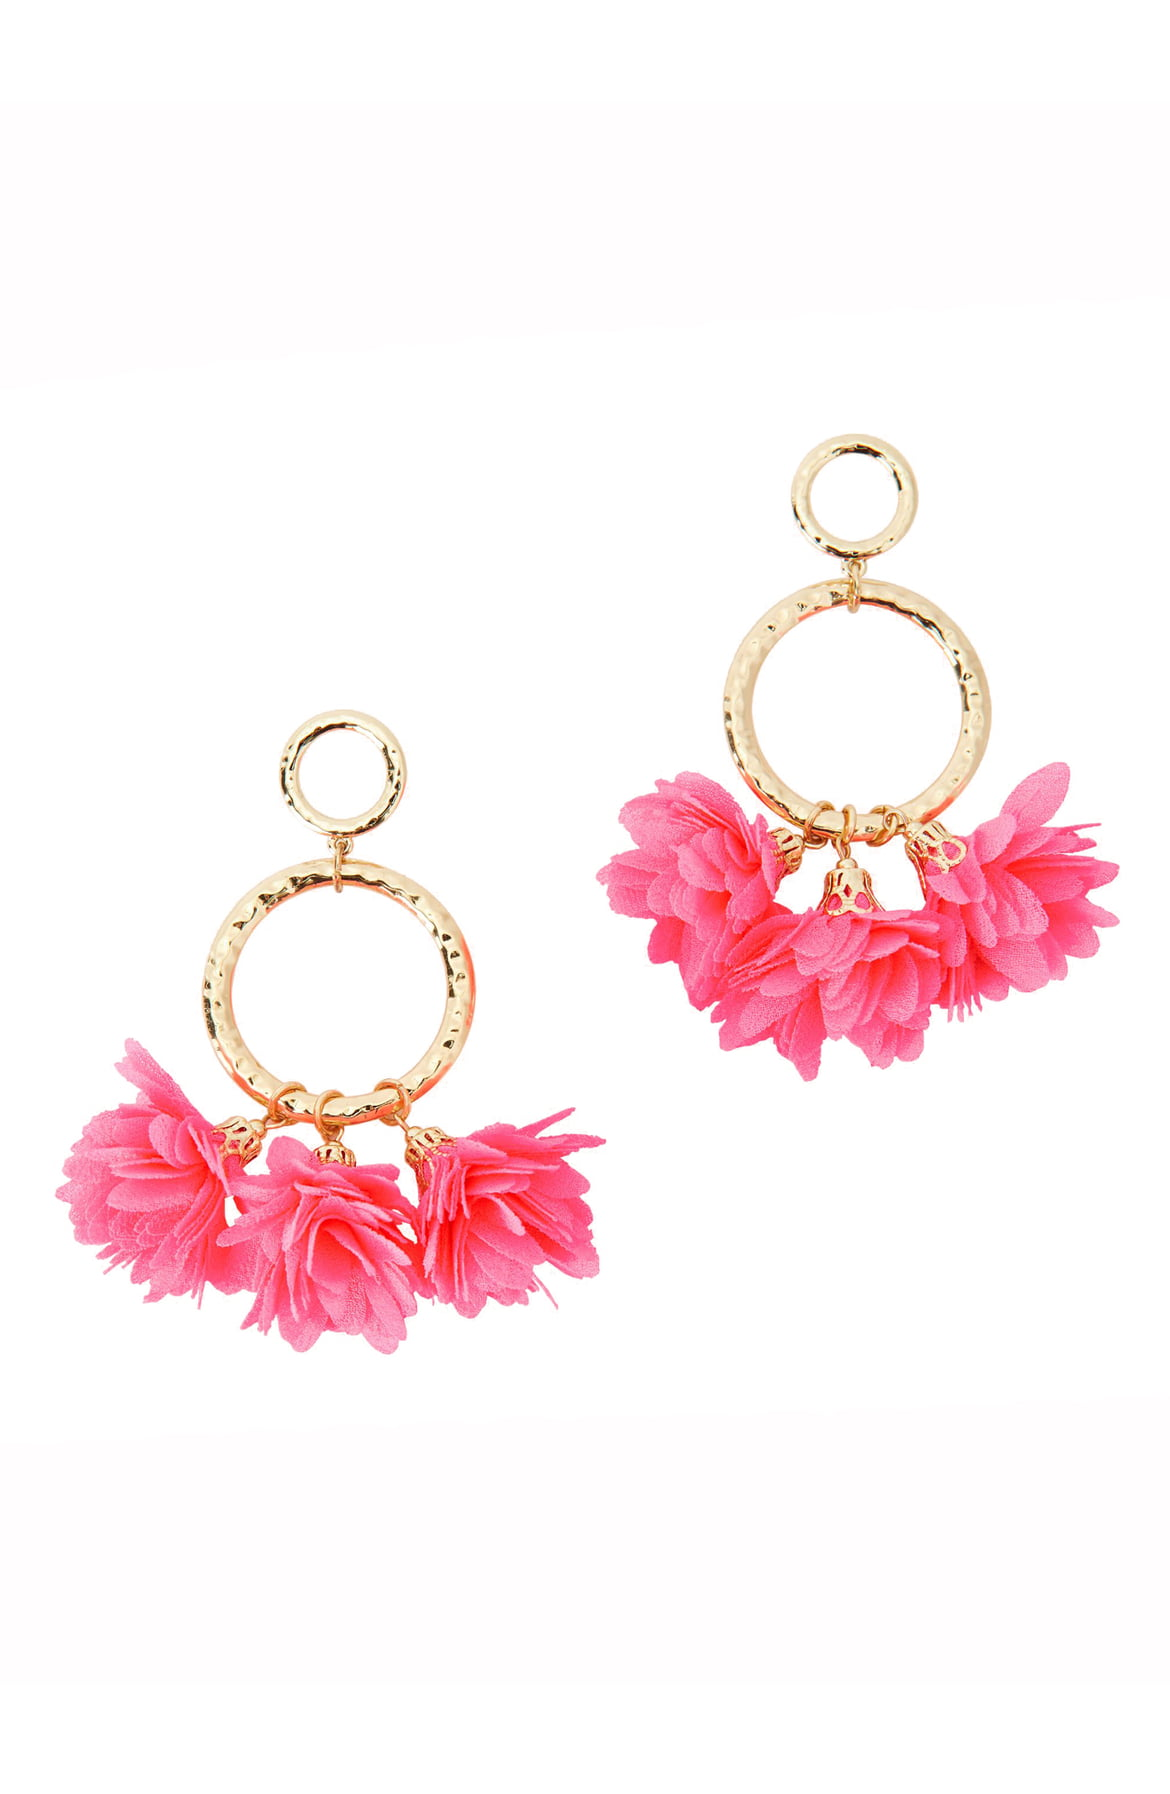 Cascading Petals Hoop Earrings PINK TROPICS